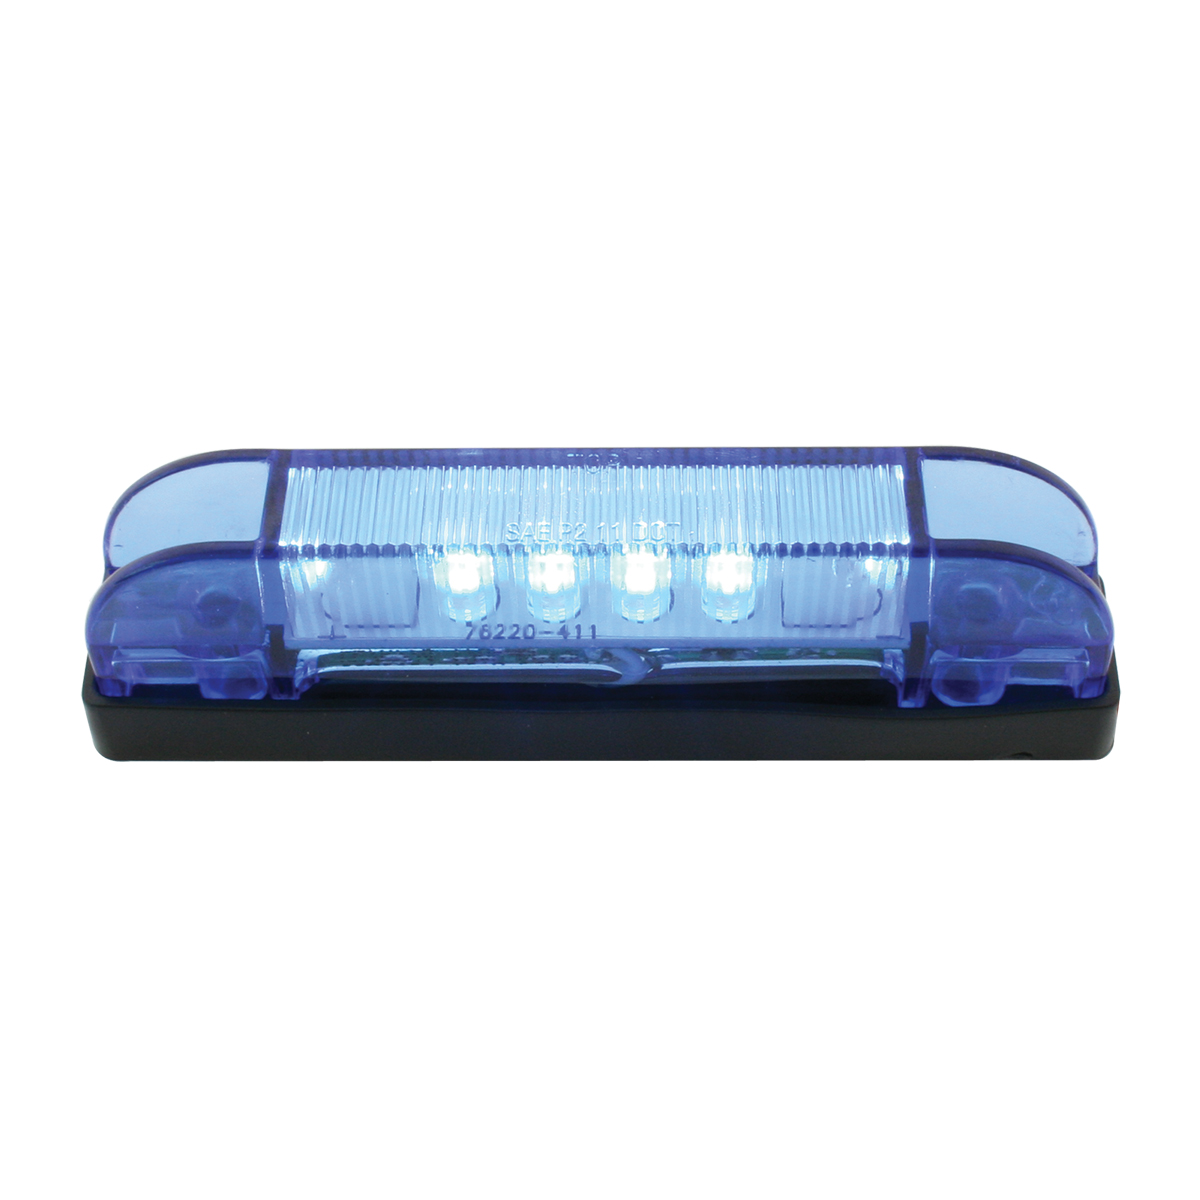 76224 Thin Line Wide Angle LED Marker Light in Blue/Blue. 76224 Thin Line Wide Angle LED Marker Light in Blue/Blue  sc 1 st  Grand General & Thin Line Wide Angle Surface Mount LED Marker Light - Grand ... azcodes.com